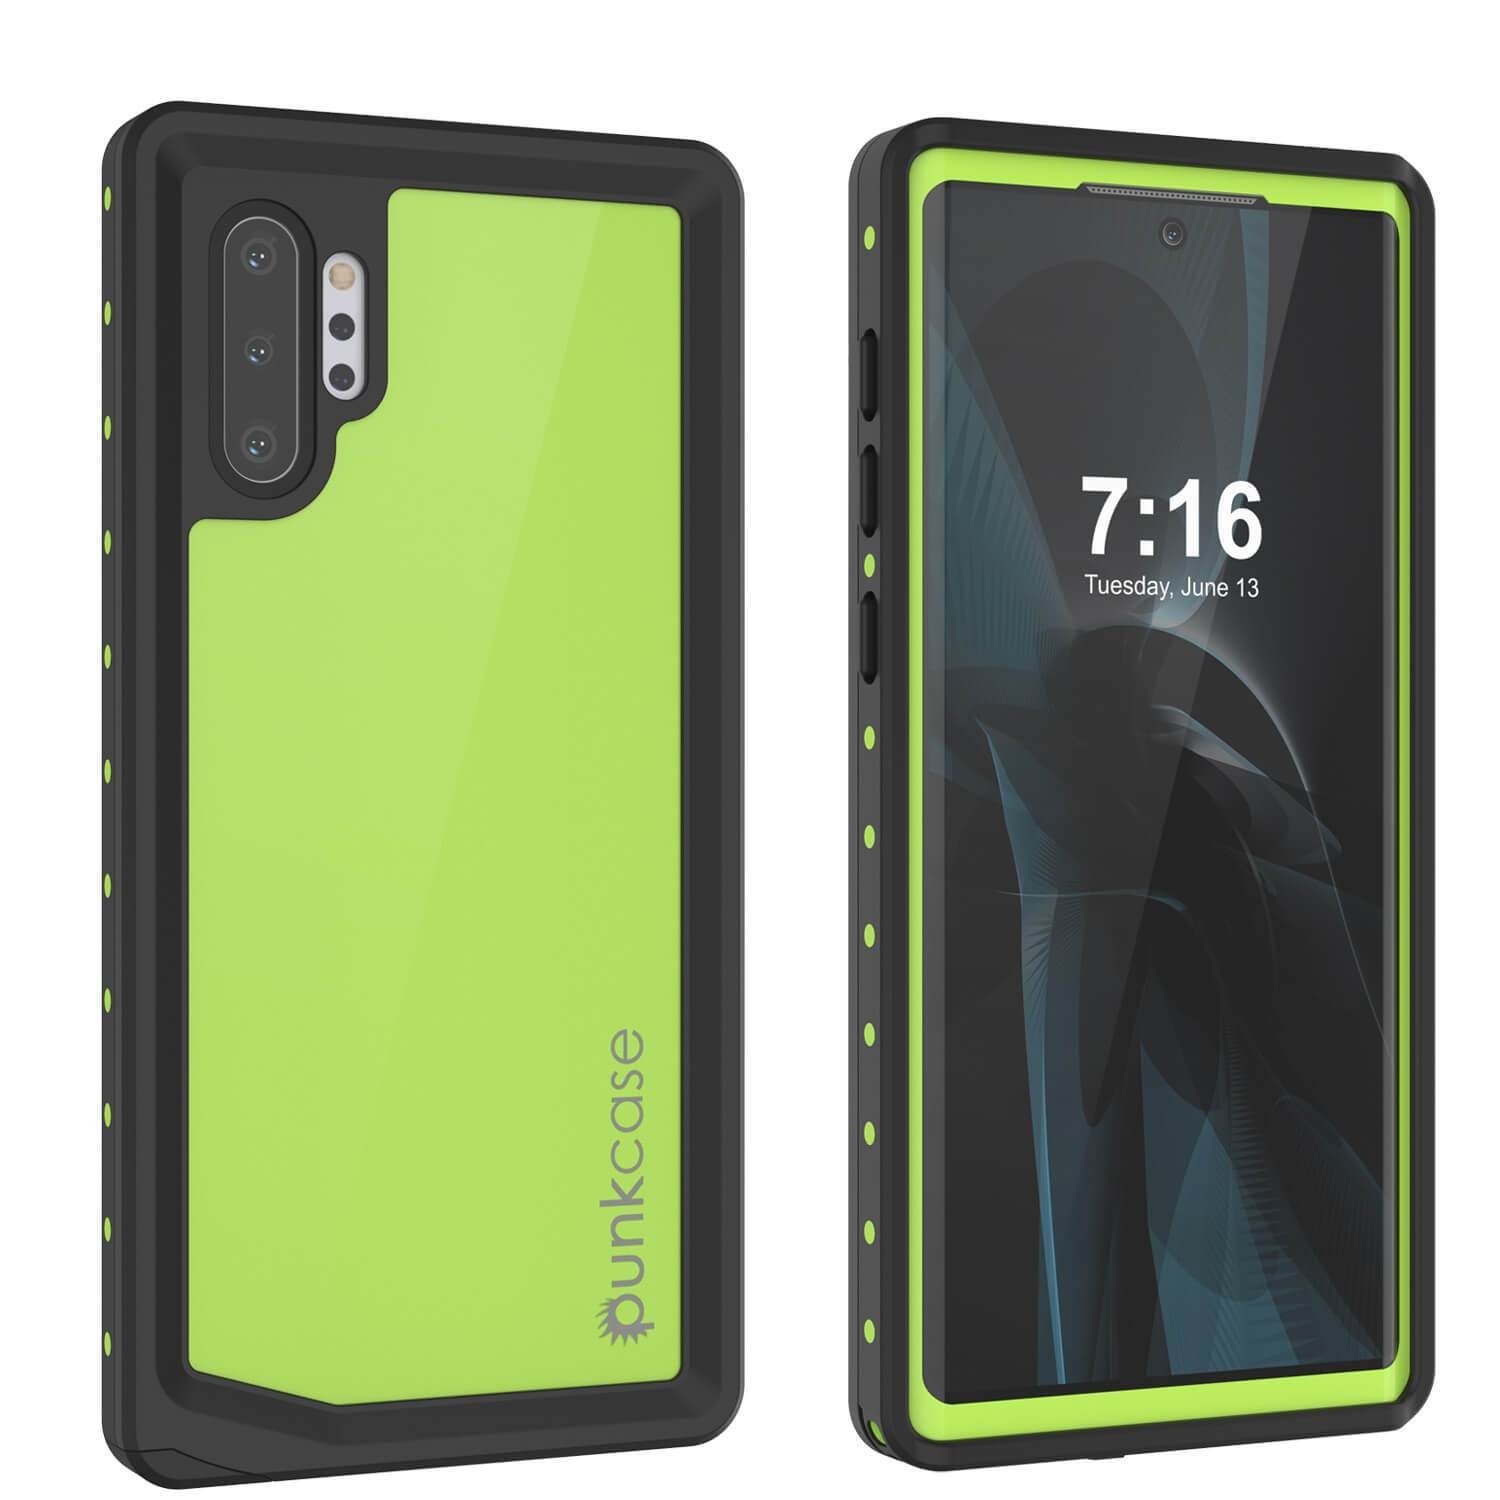 Galaxy Note 10+ Plus Waterproof Case, Punkcase Studstar Light Green Thin Armor Cover